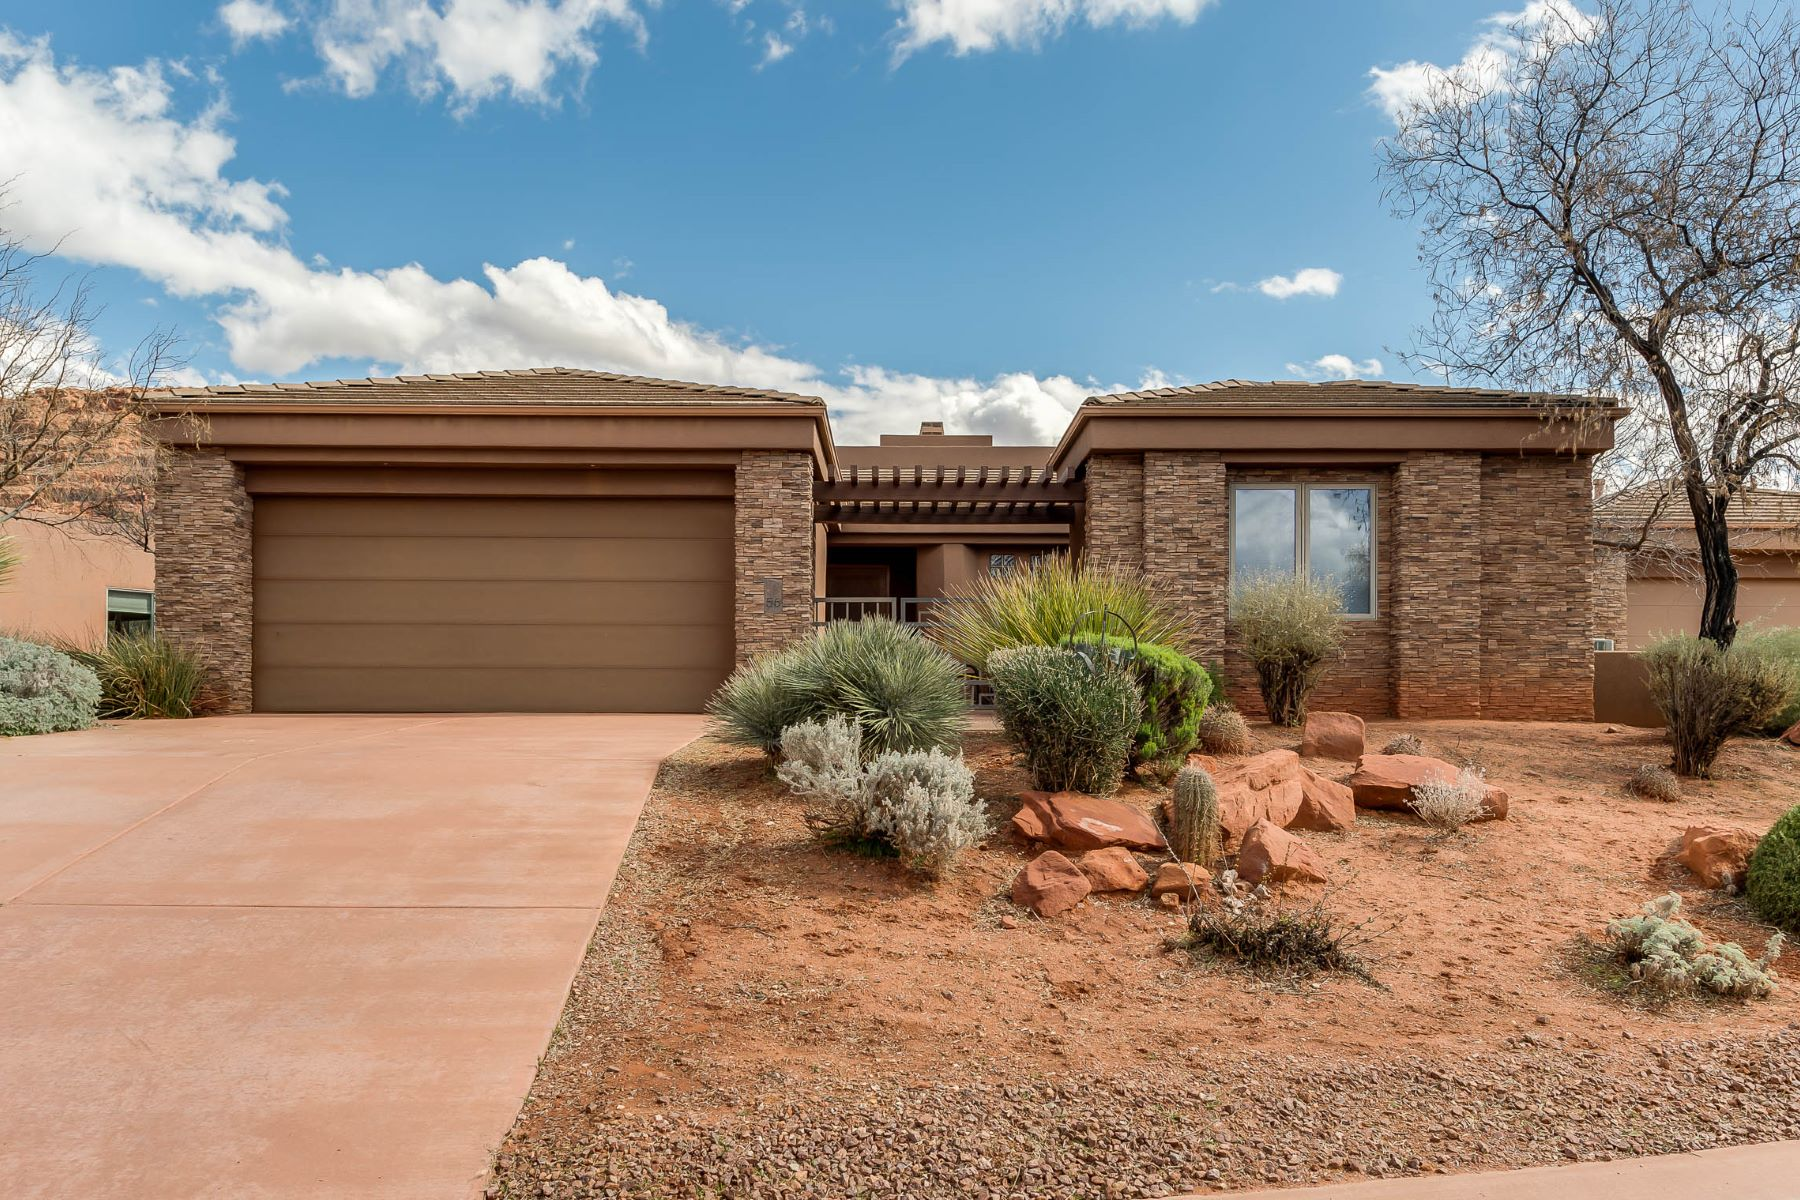 Villa per Vendita alle ore Elegant and Inviting 3 Bed and 3 Bath Home 2255 N Tuweap Dr. #56 St. George, Utah, 84770 Stati Uniti